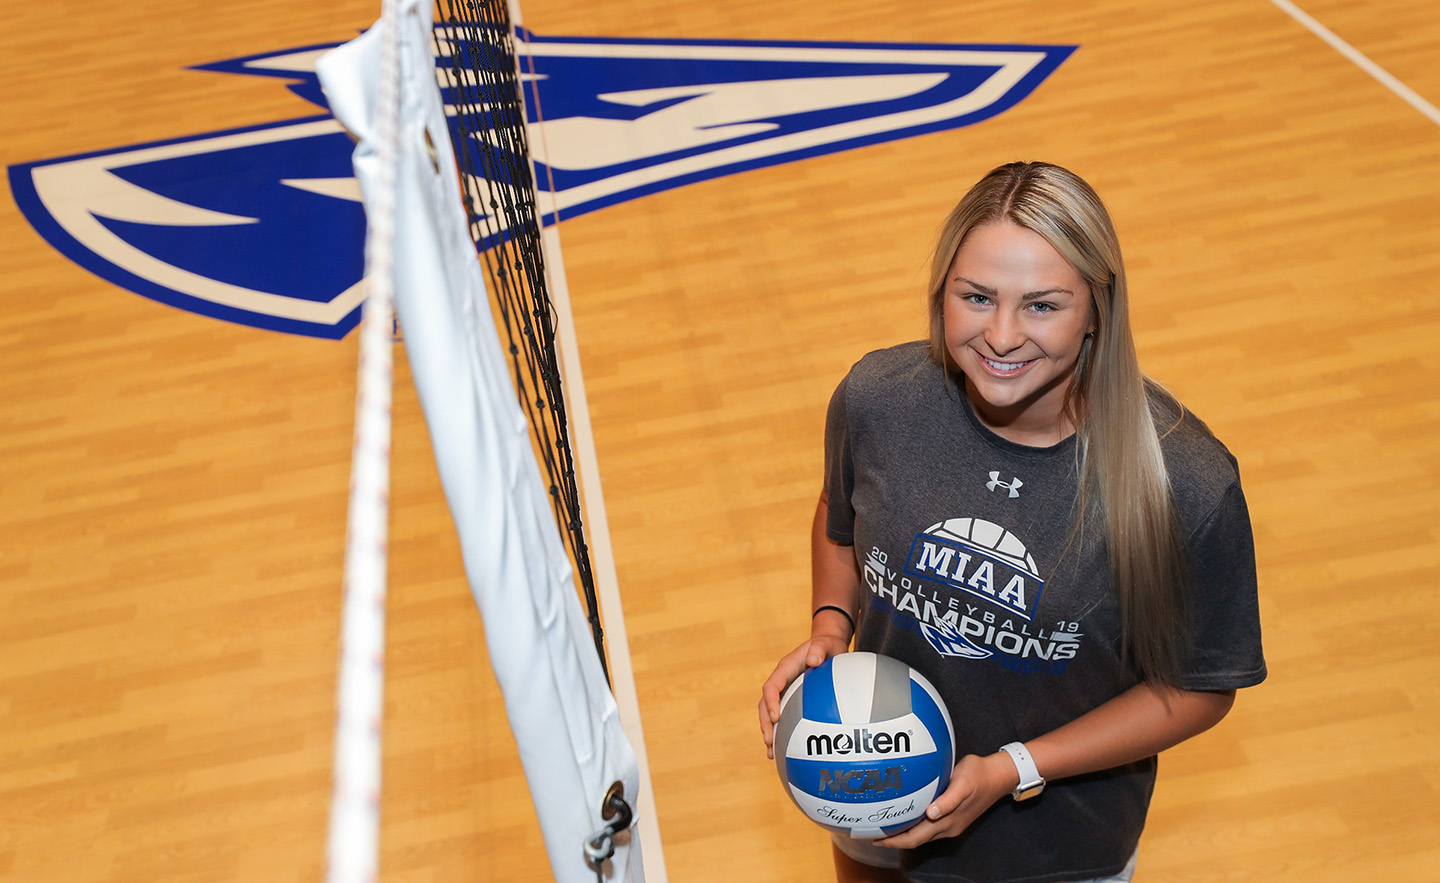 """""""I knew it wasn't going to be easy, and most days were going to be harder than the last, but at the end of the day I knew I wanted to be part of the Loper volleyball program,"""" Sami Mauch said of her recovery from two knee surgeries."""